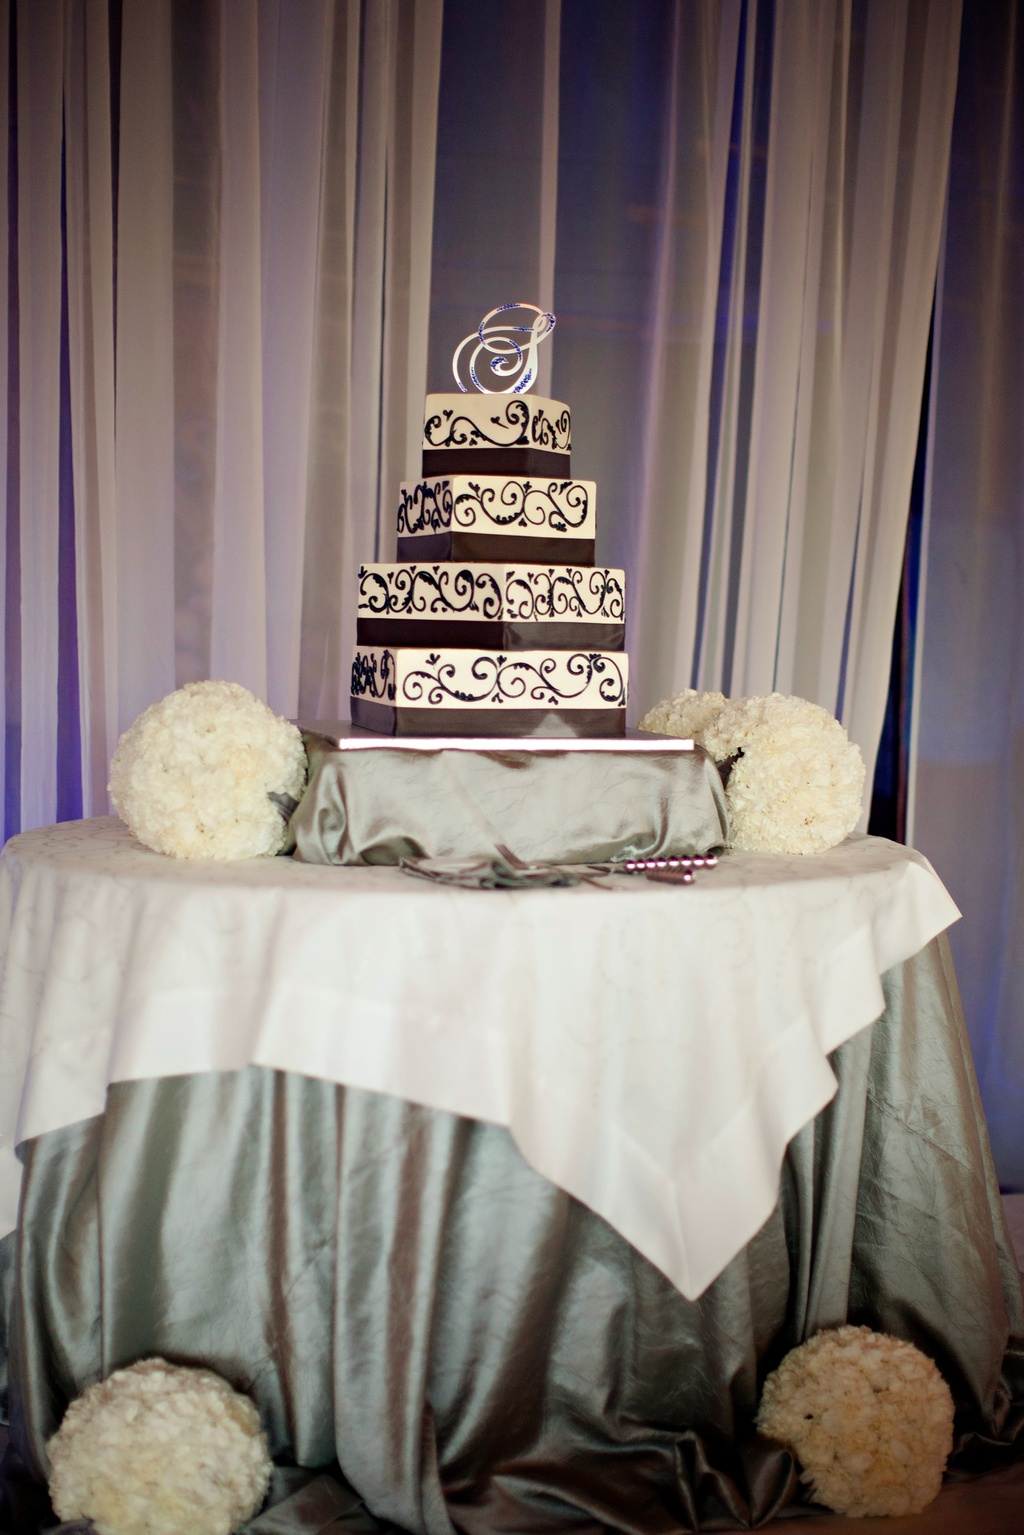 Real-weddings-classic-wedding-cake-damask.full